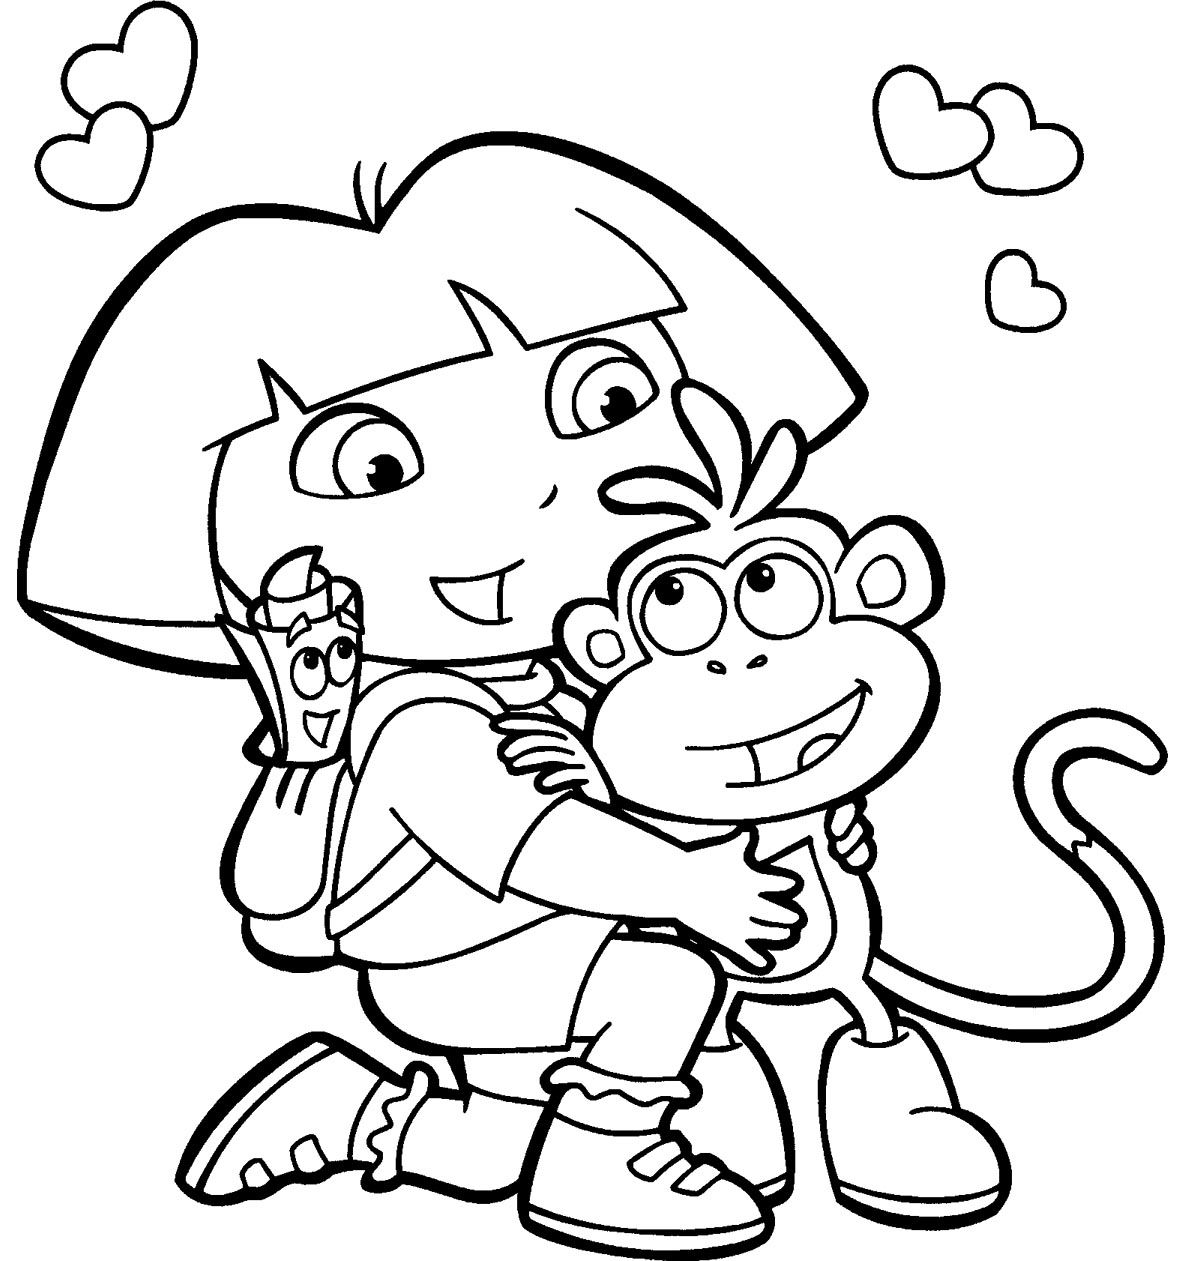 Dora Coloring Pages Dora Coloring Pages Coloringpages Coloring